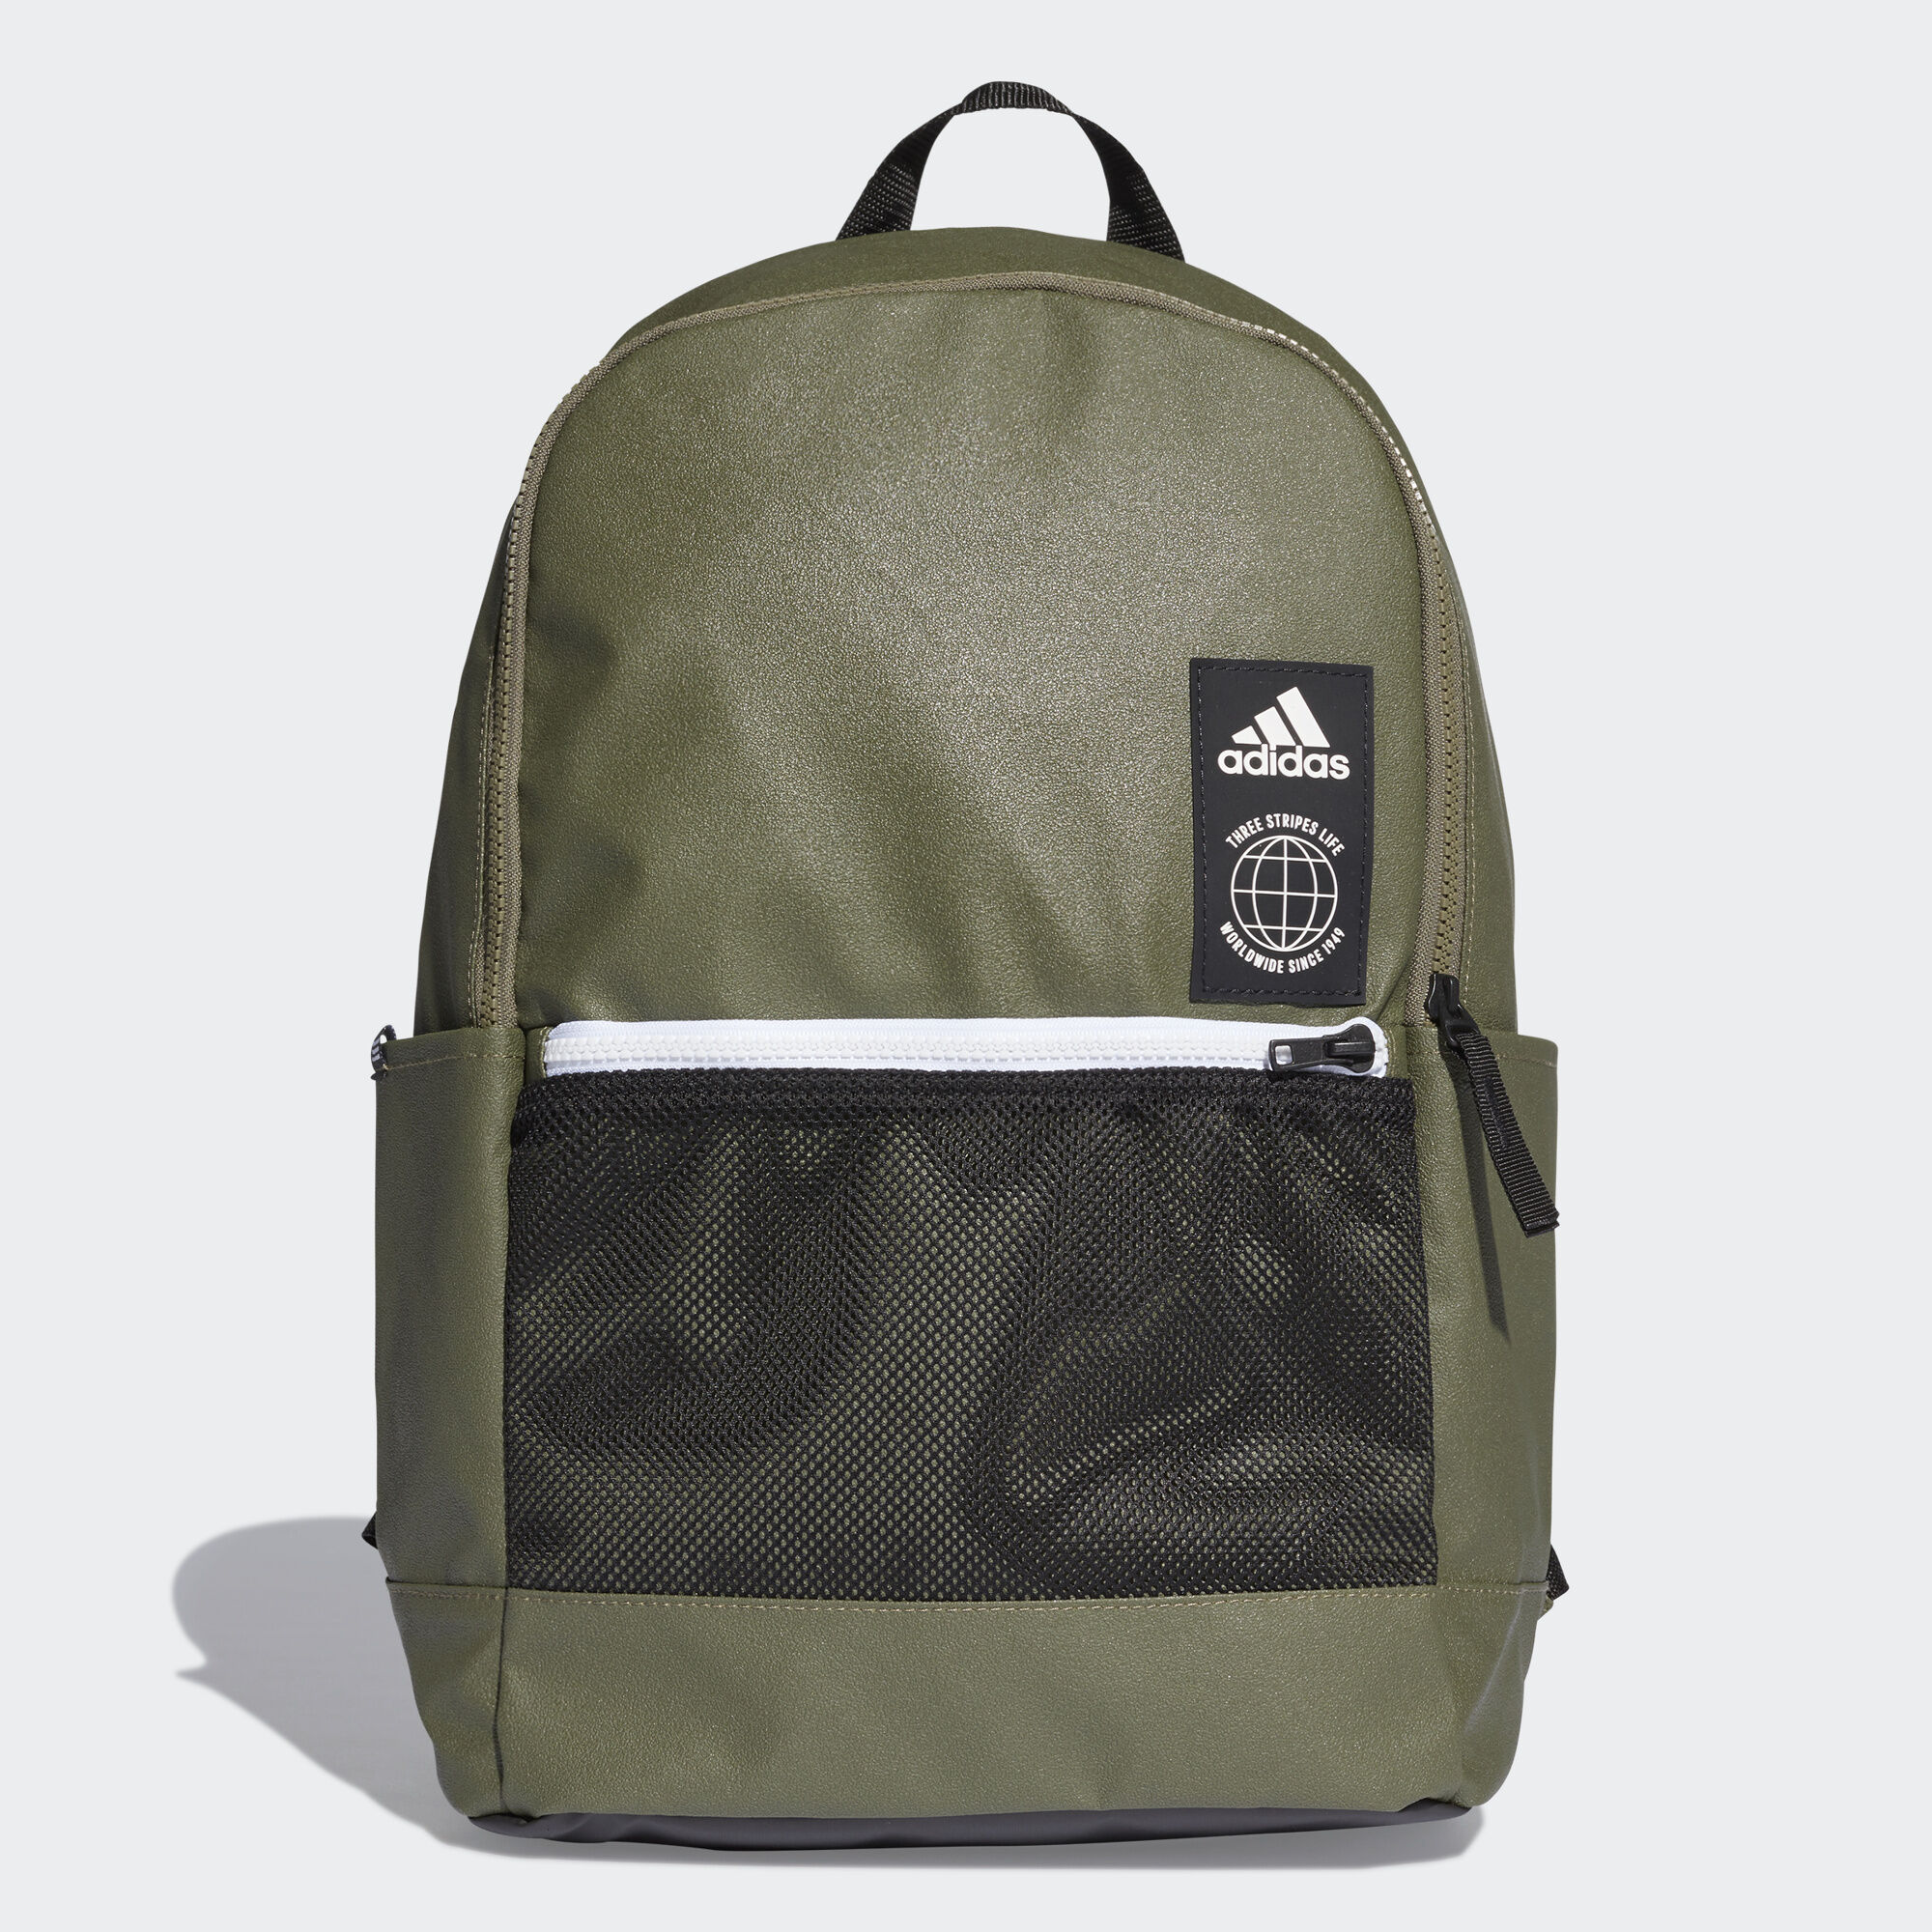 79edd827ece3 adidas - Classic Urban Backpack Green   Black   White DT2606